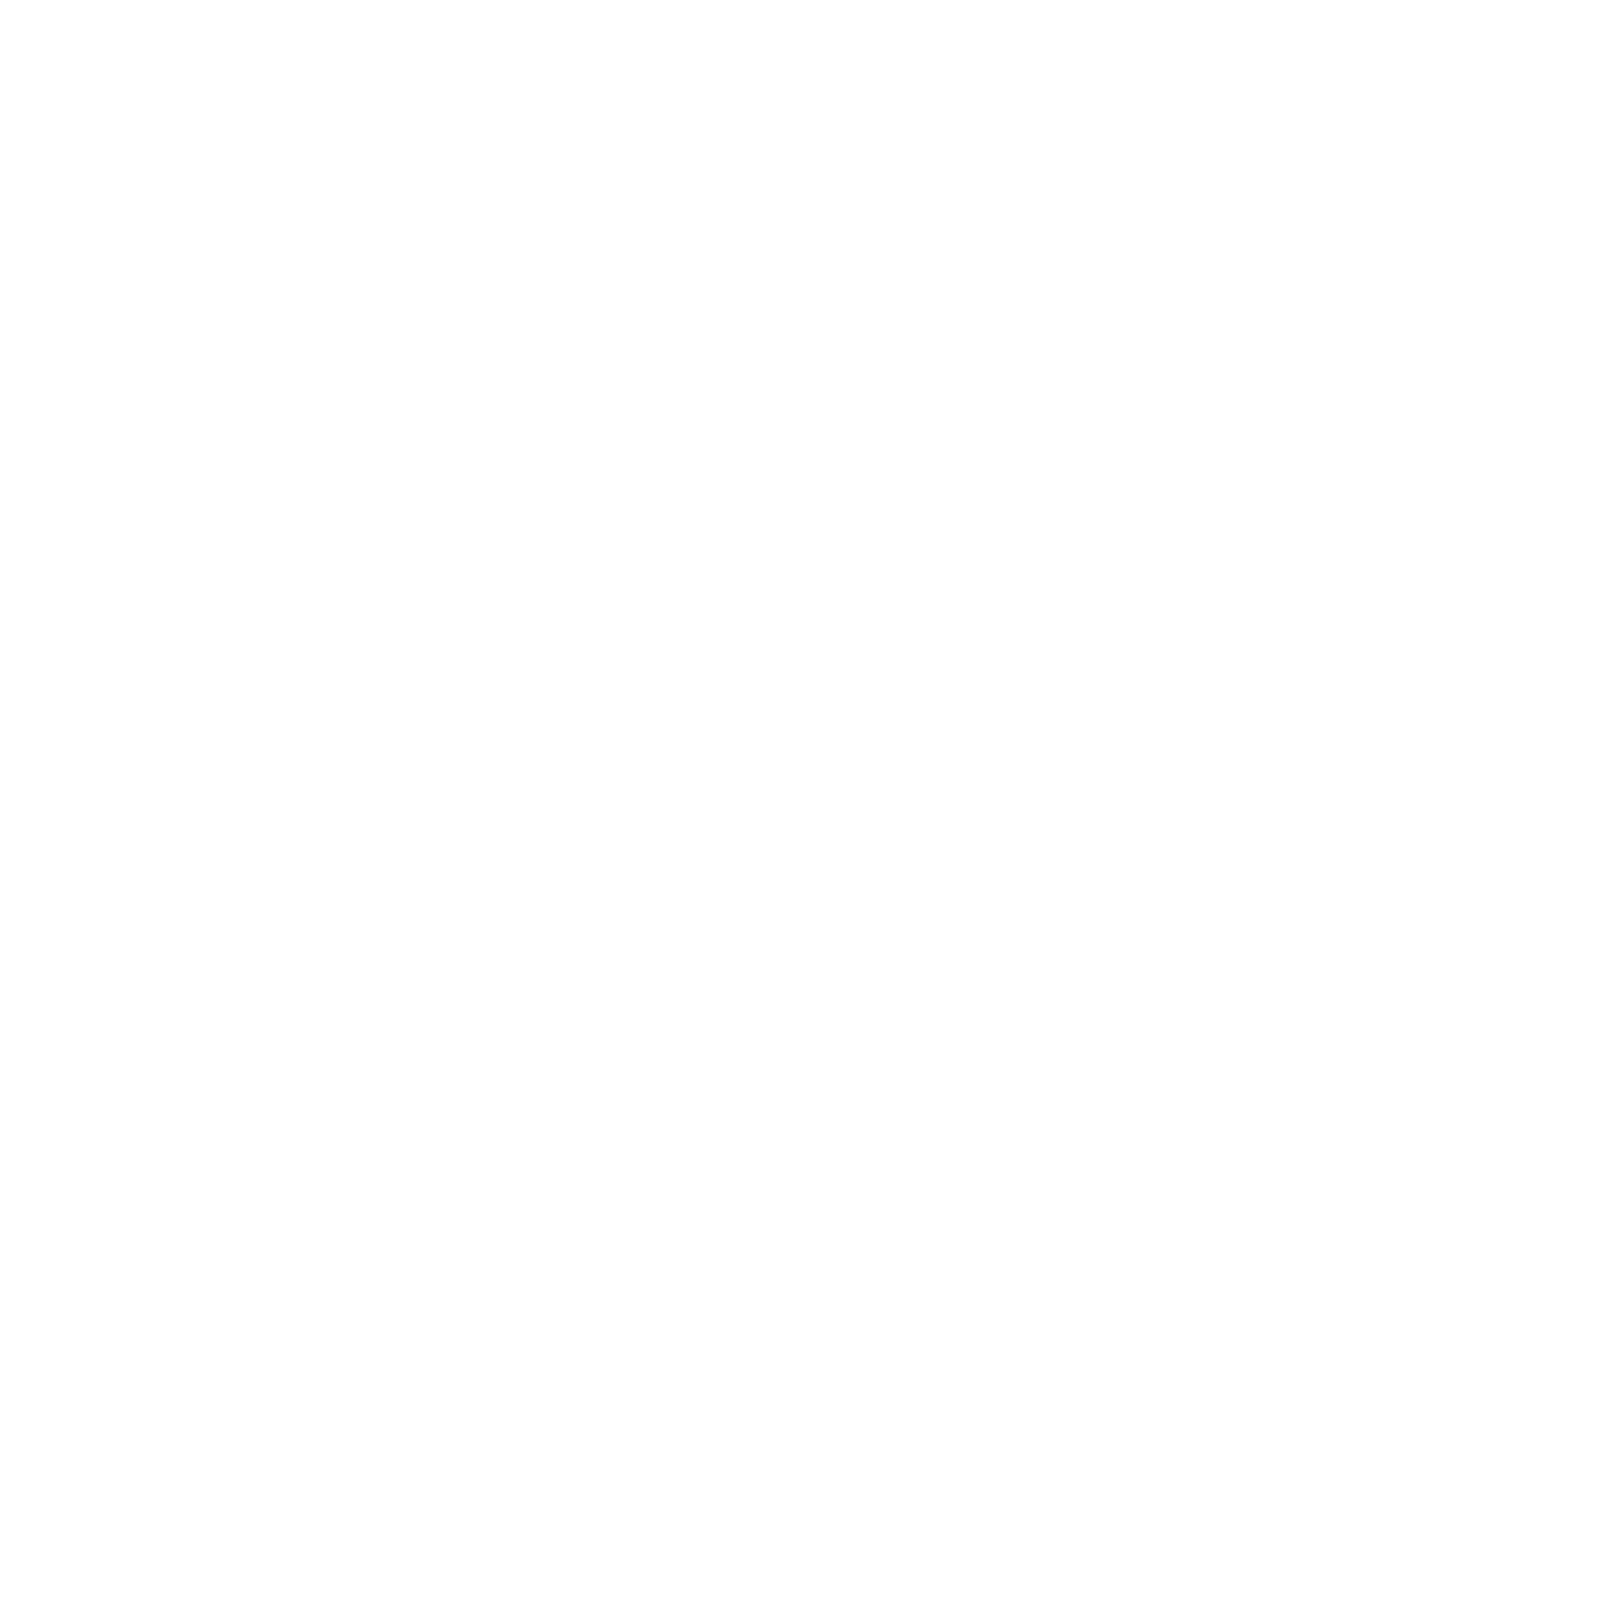 REDS10-project-logo.png